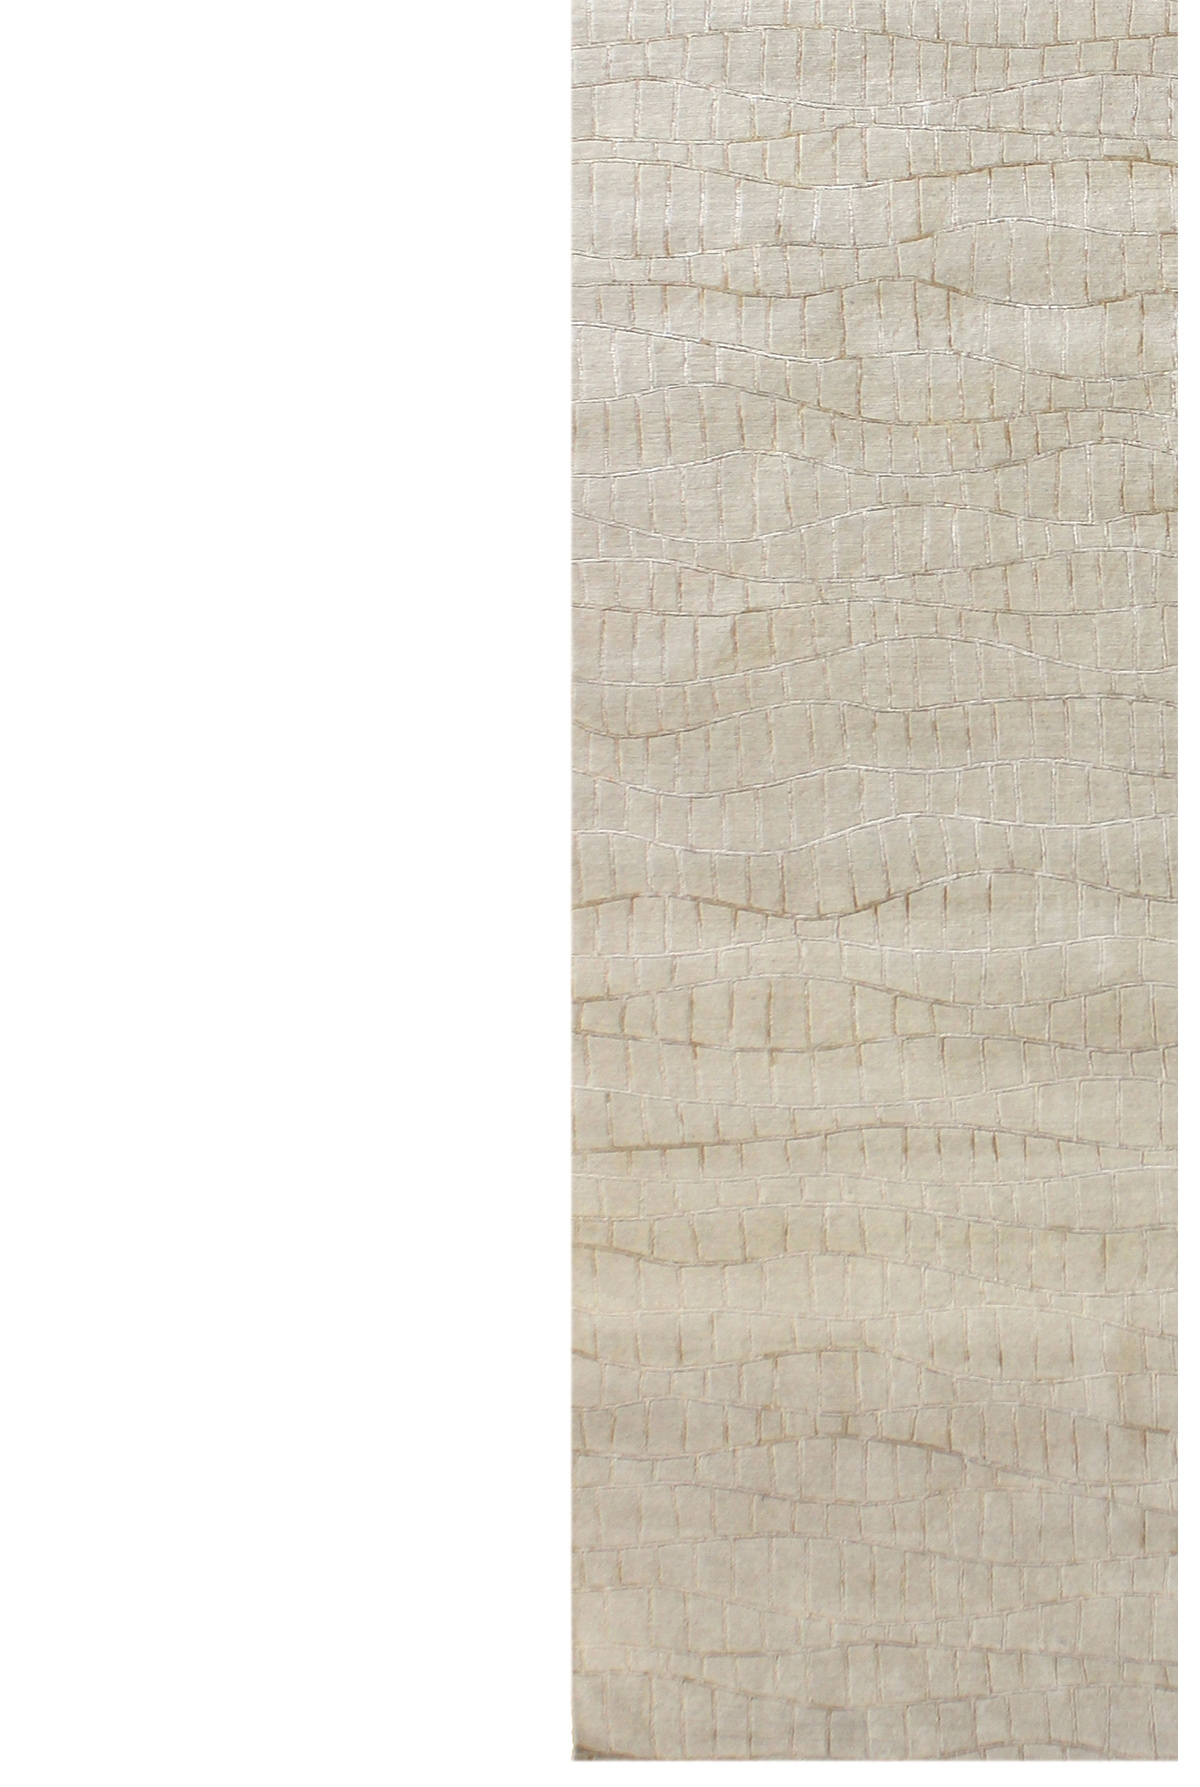 Runner rug calvin klein lunar runner rug shell 69x226cm for Contemporary runner rugs for hallway